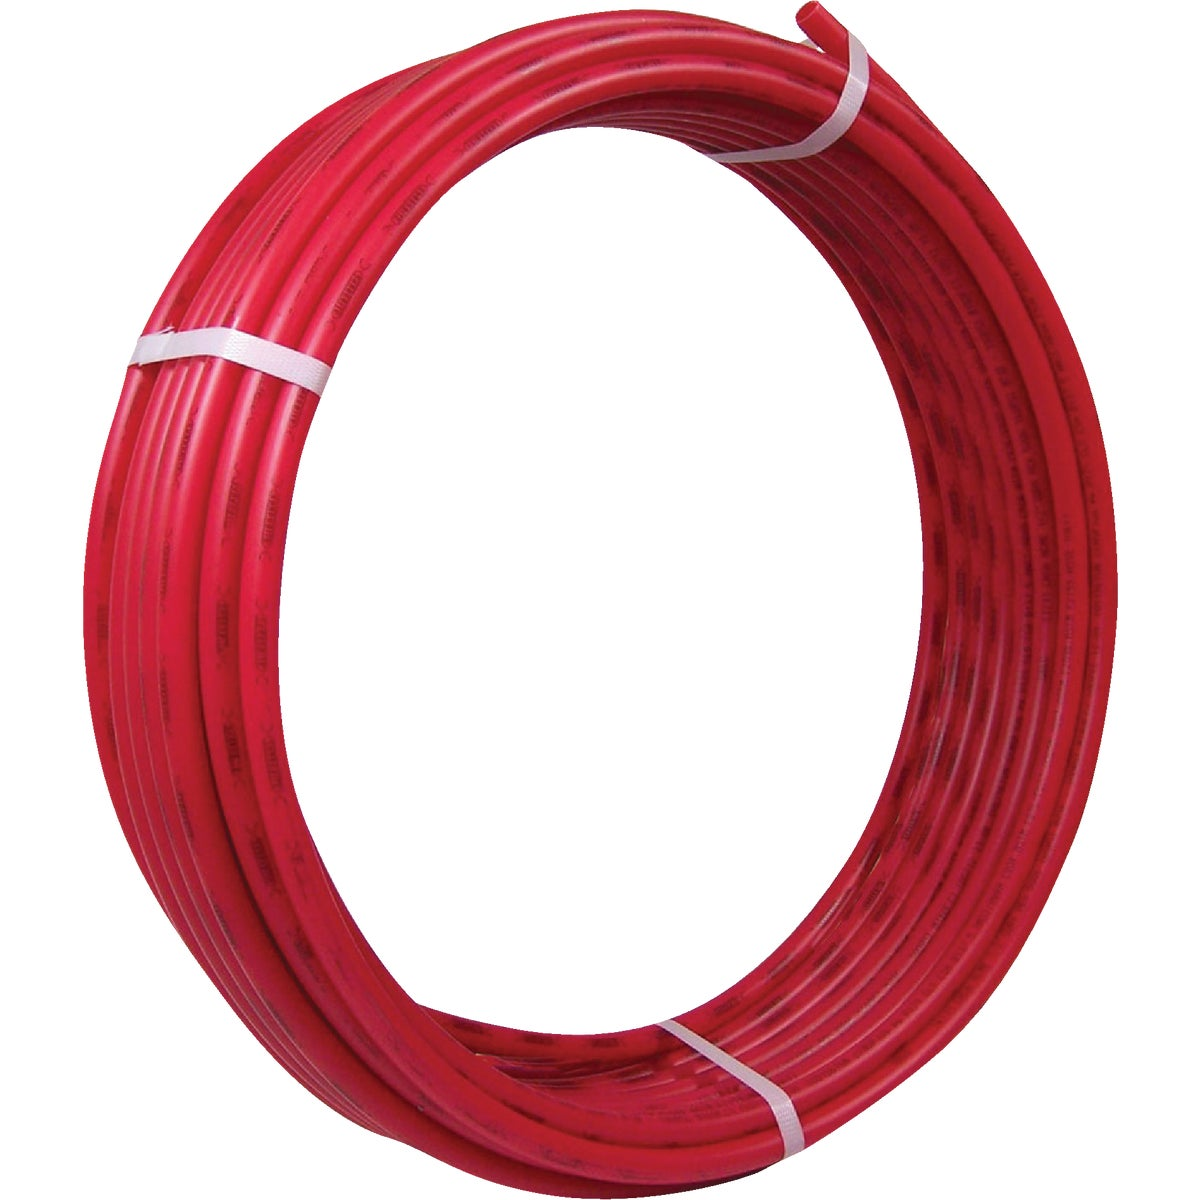 "3/4""X300' RED PEX TUBING - WPTC12-300R by Watts Regulator Co"